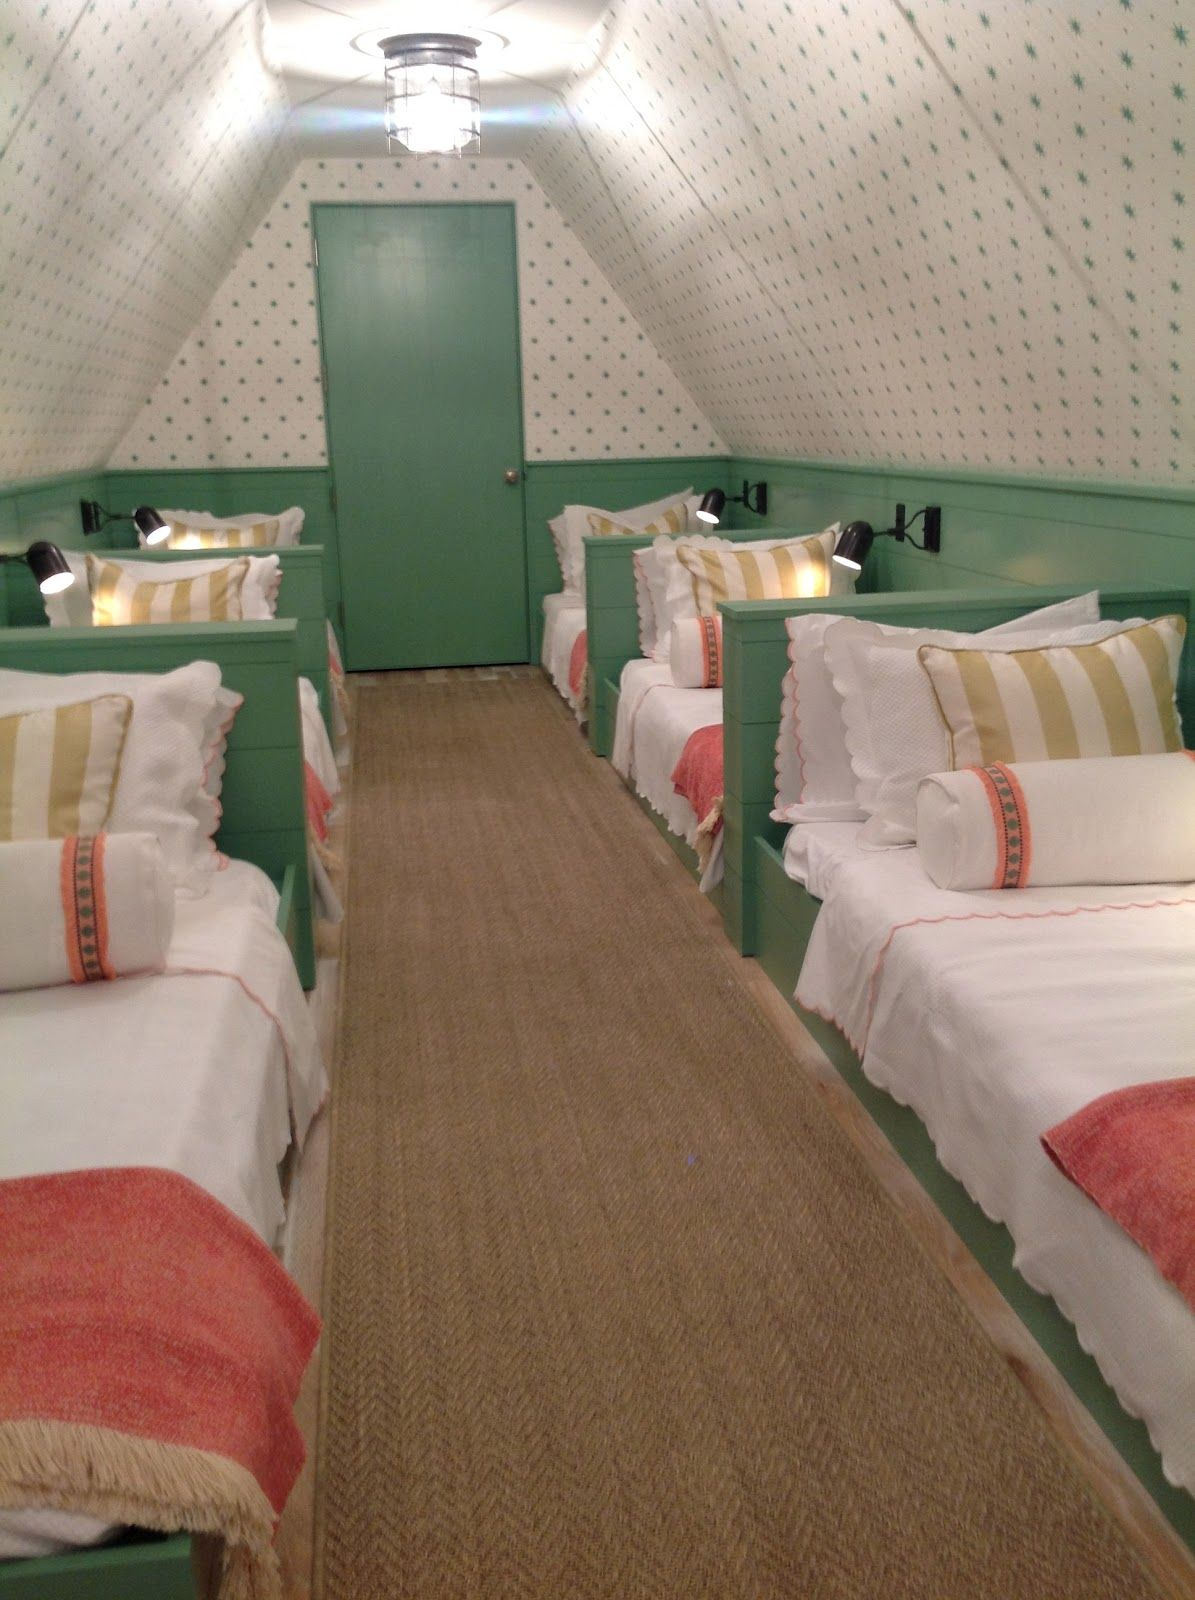 Sleepover attic. This would be amazing.